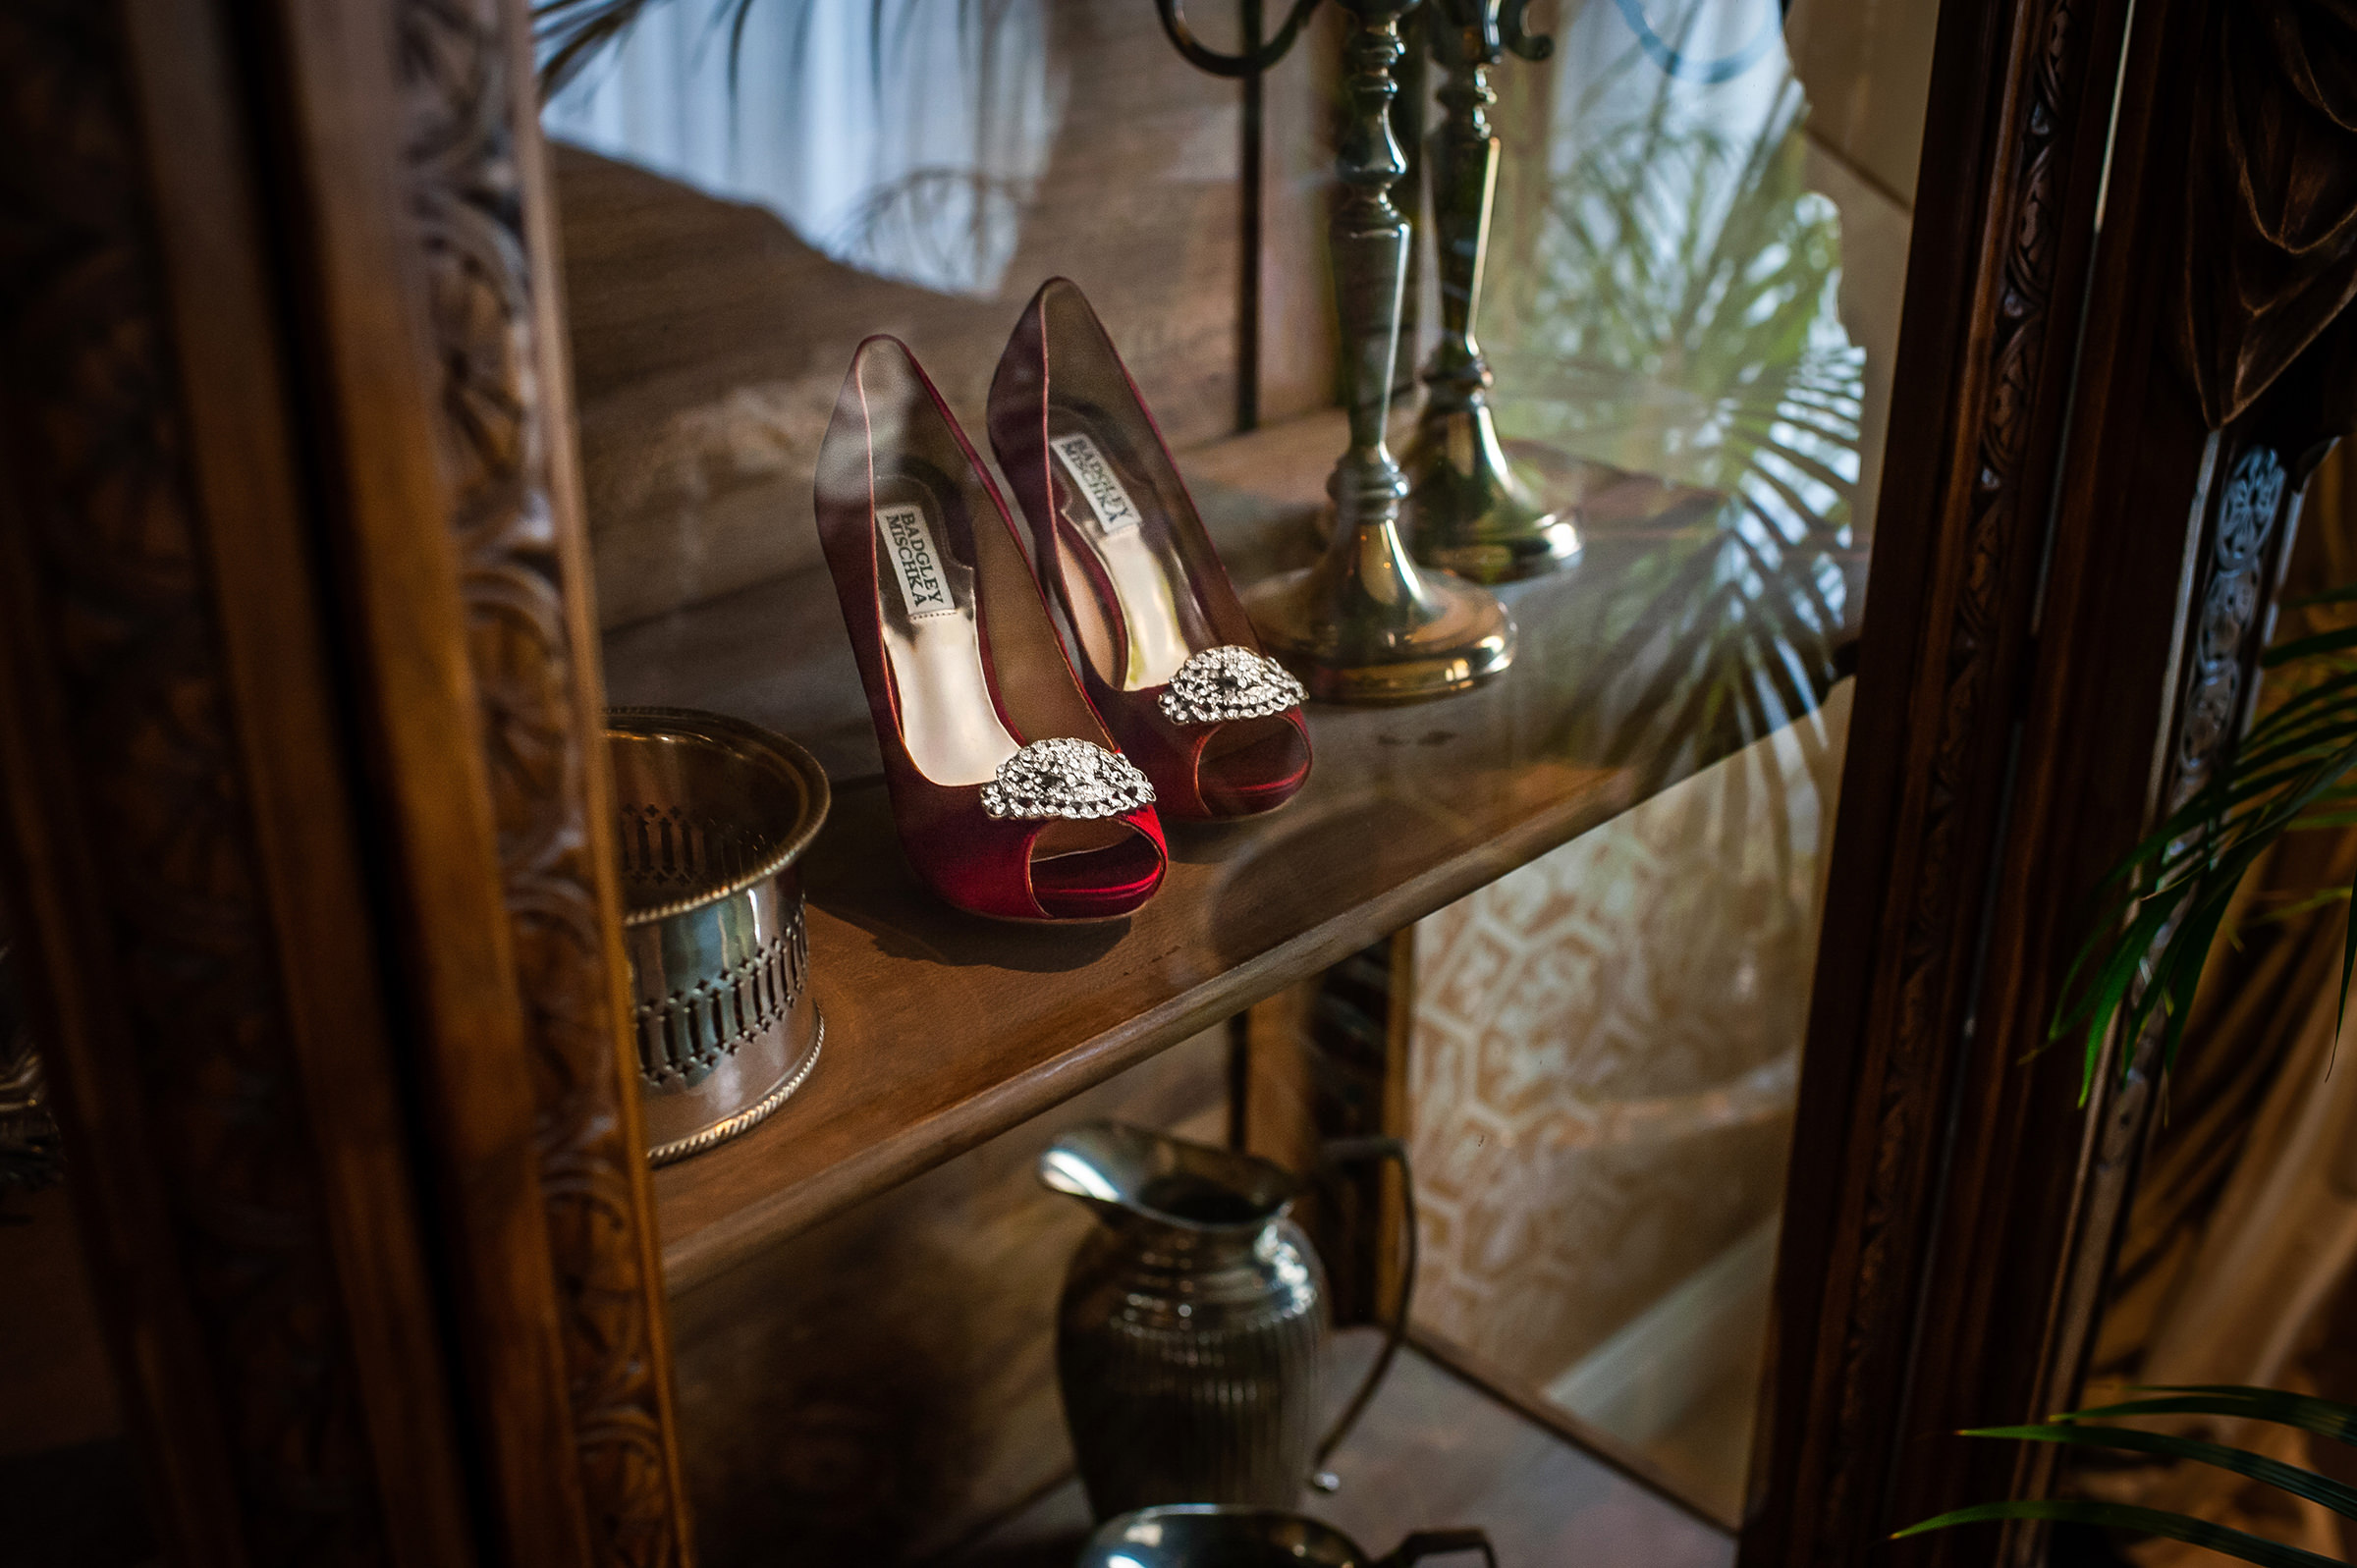 Still life with red Badgley Mischka shoes - photo by David & Sherry Photography